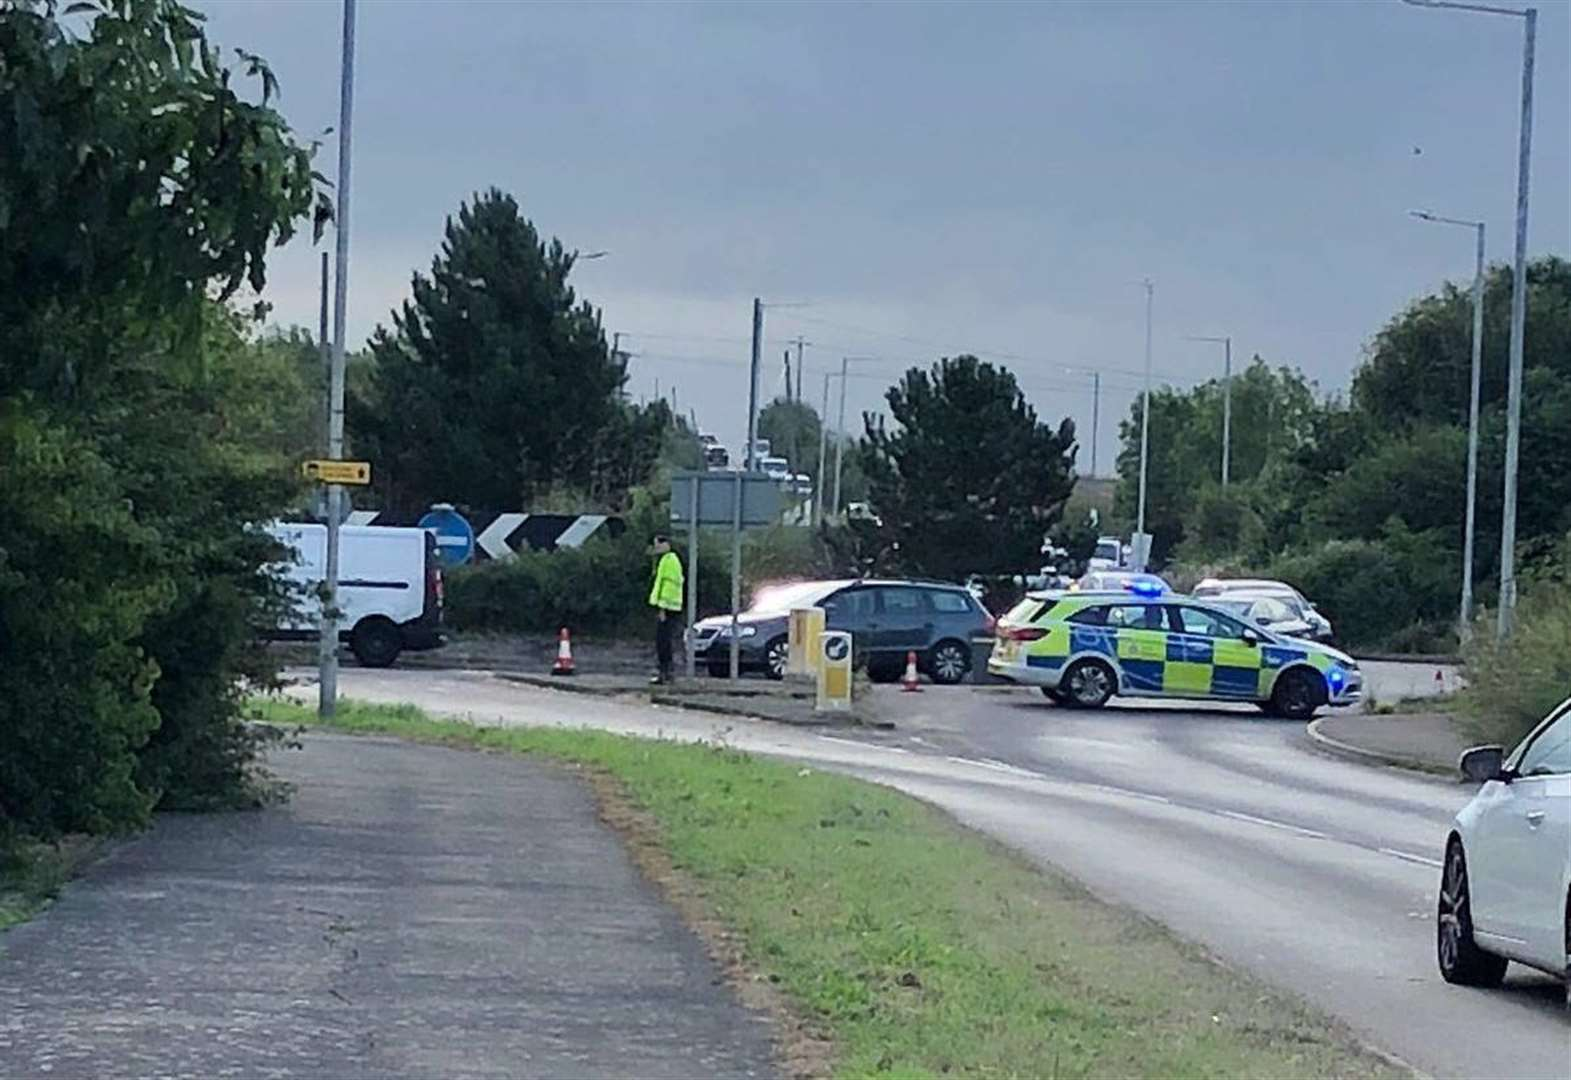 Man arrested after serious crash on main road